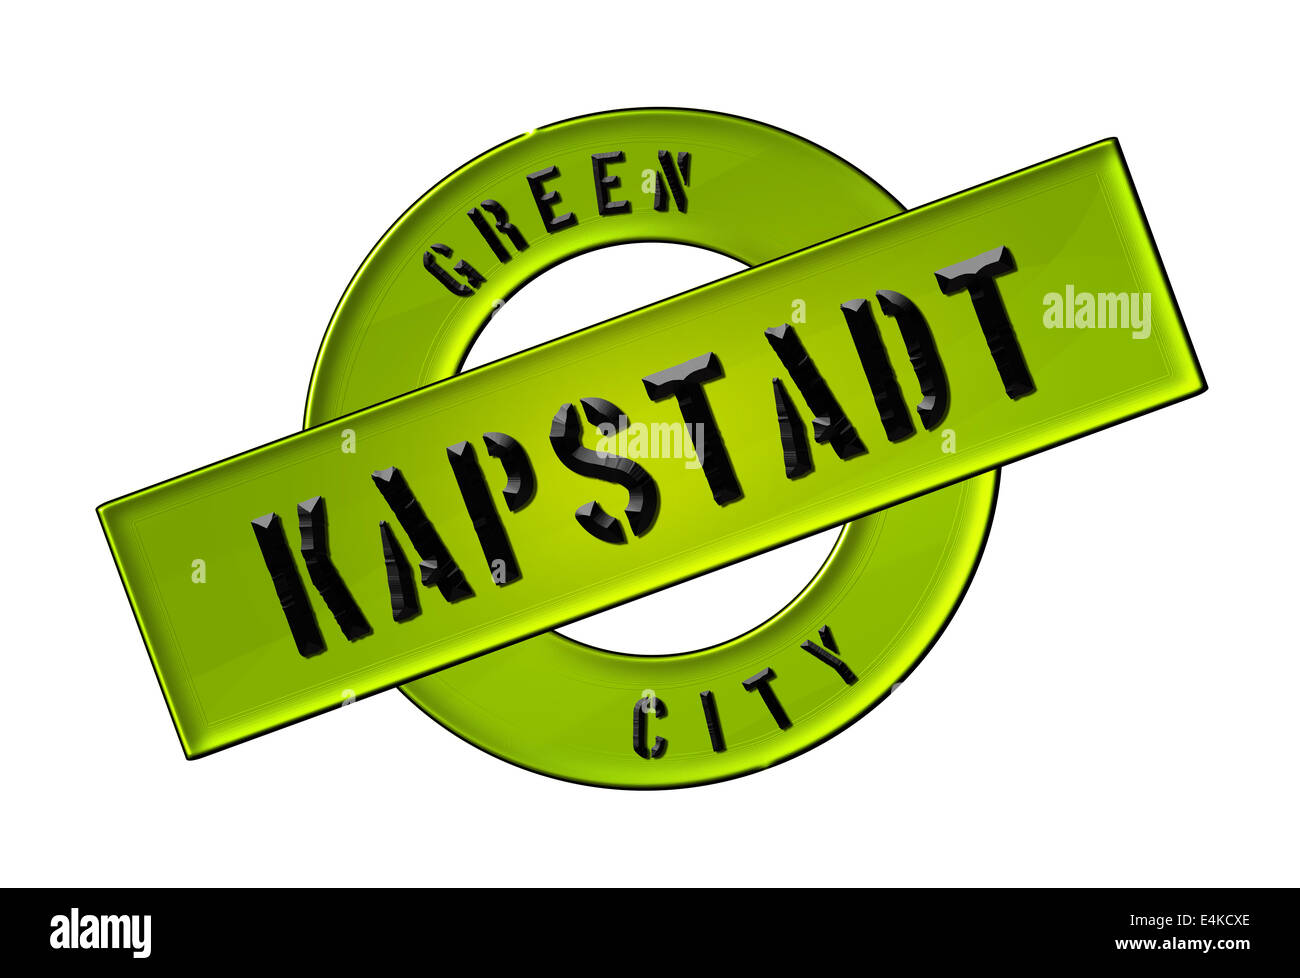 GREEN CITY KAPSTADT - Stock Image